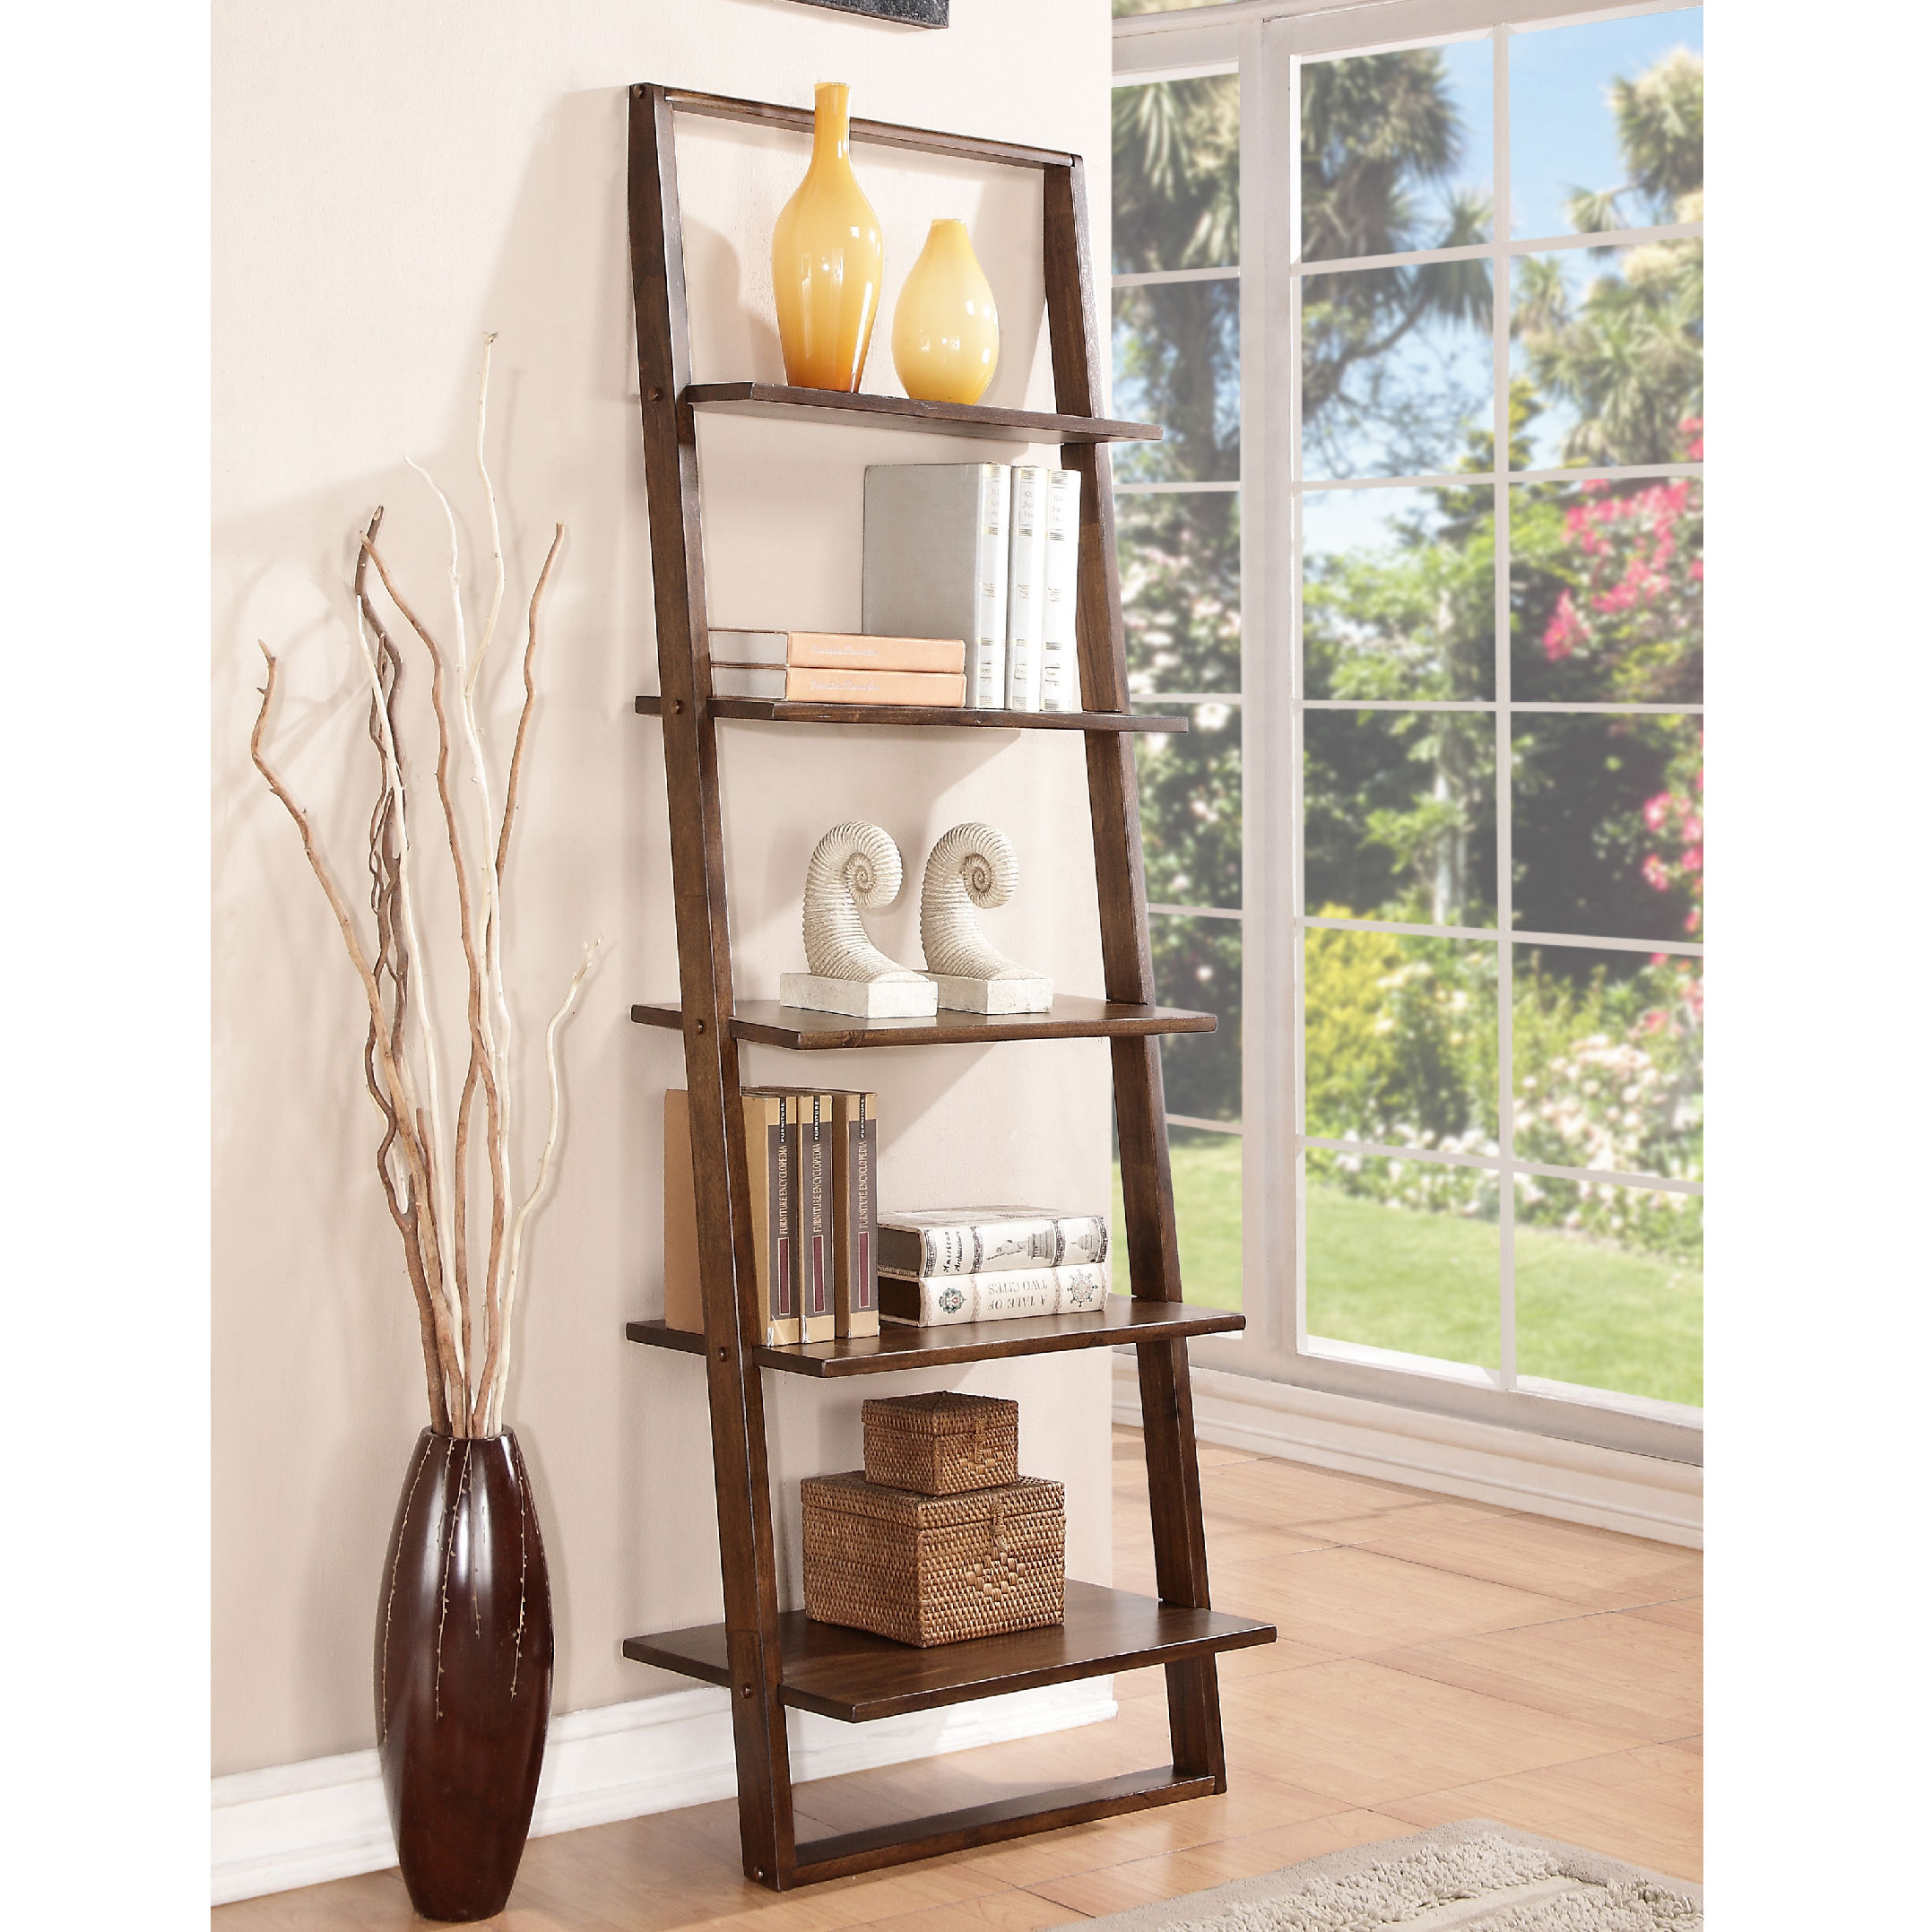 Image of: Cool Leaning Bookcase